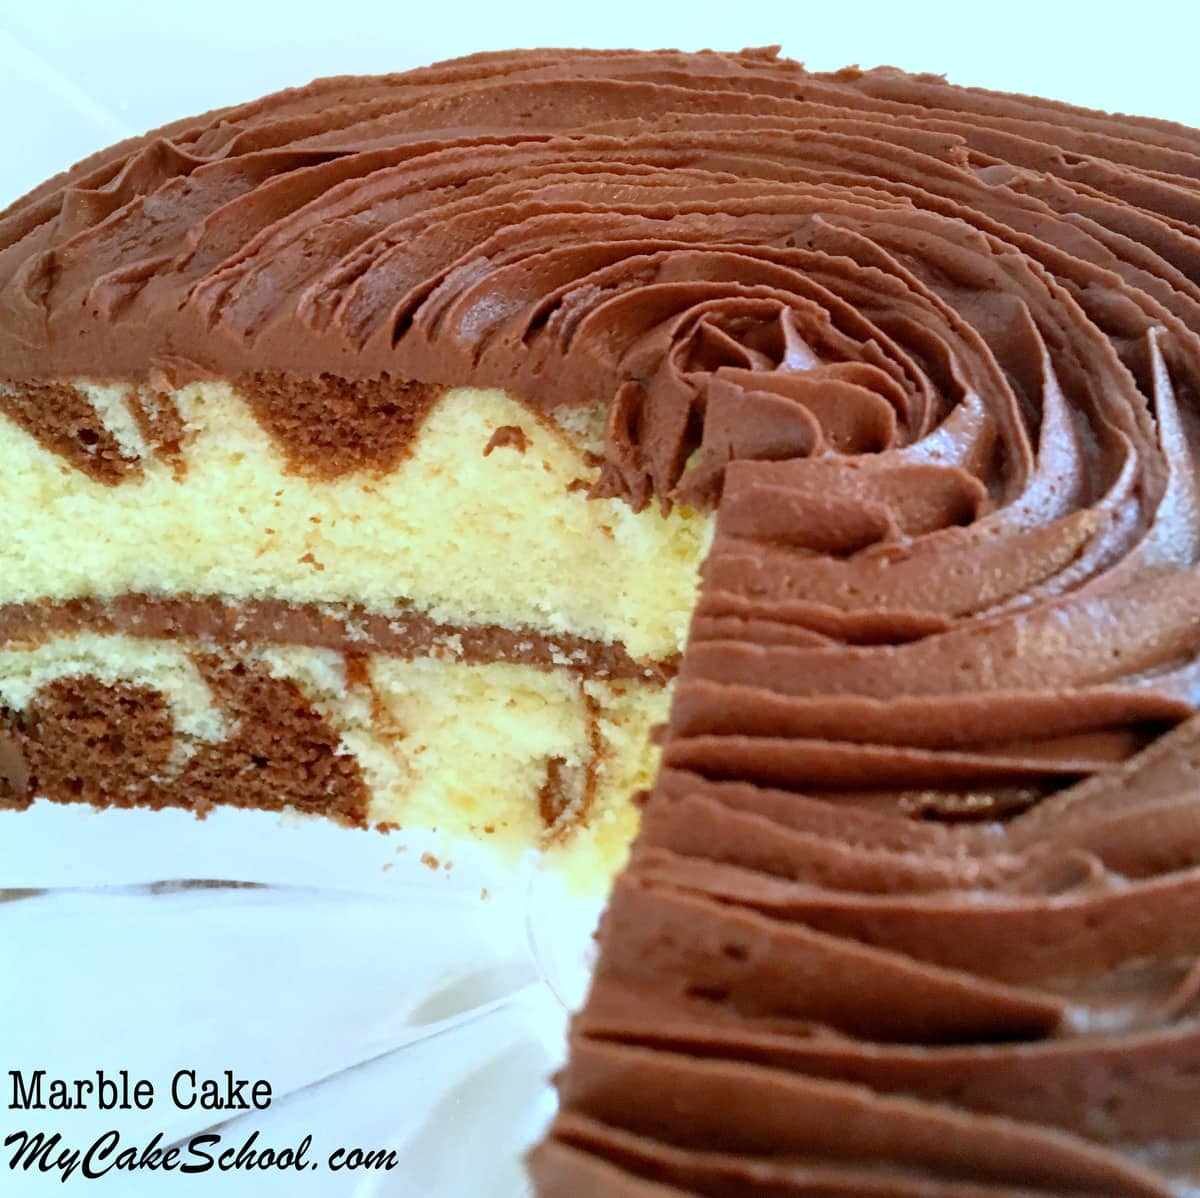 Homemade Marble Cake Recipe